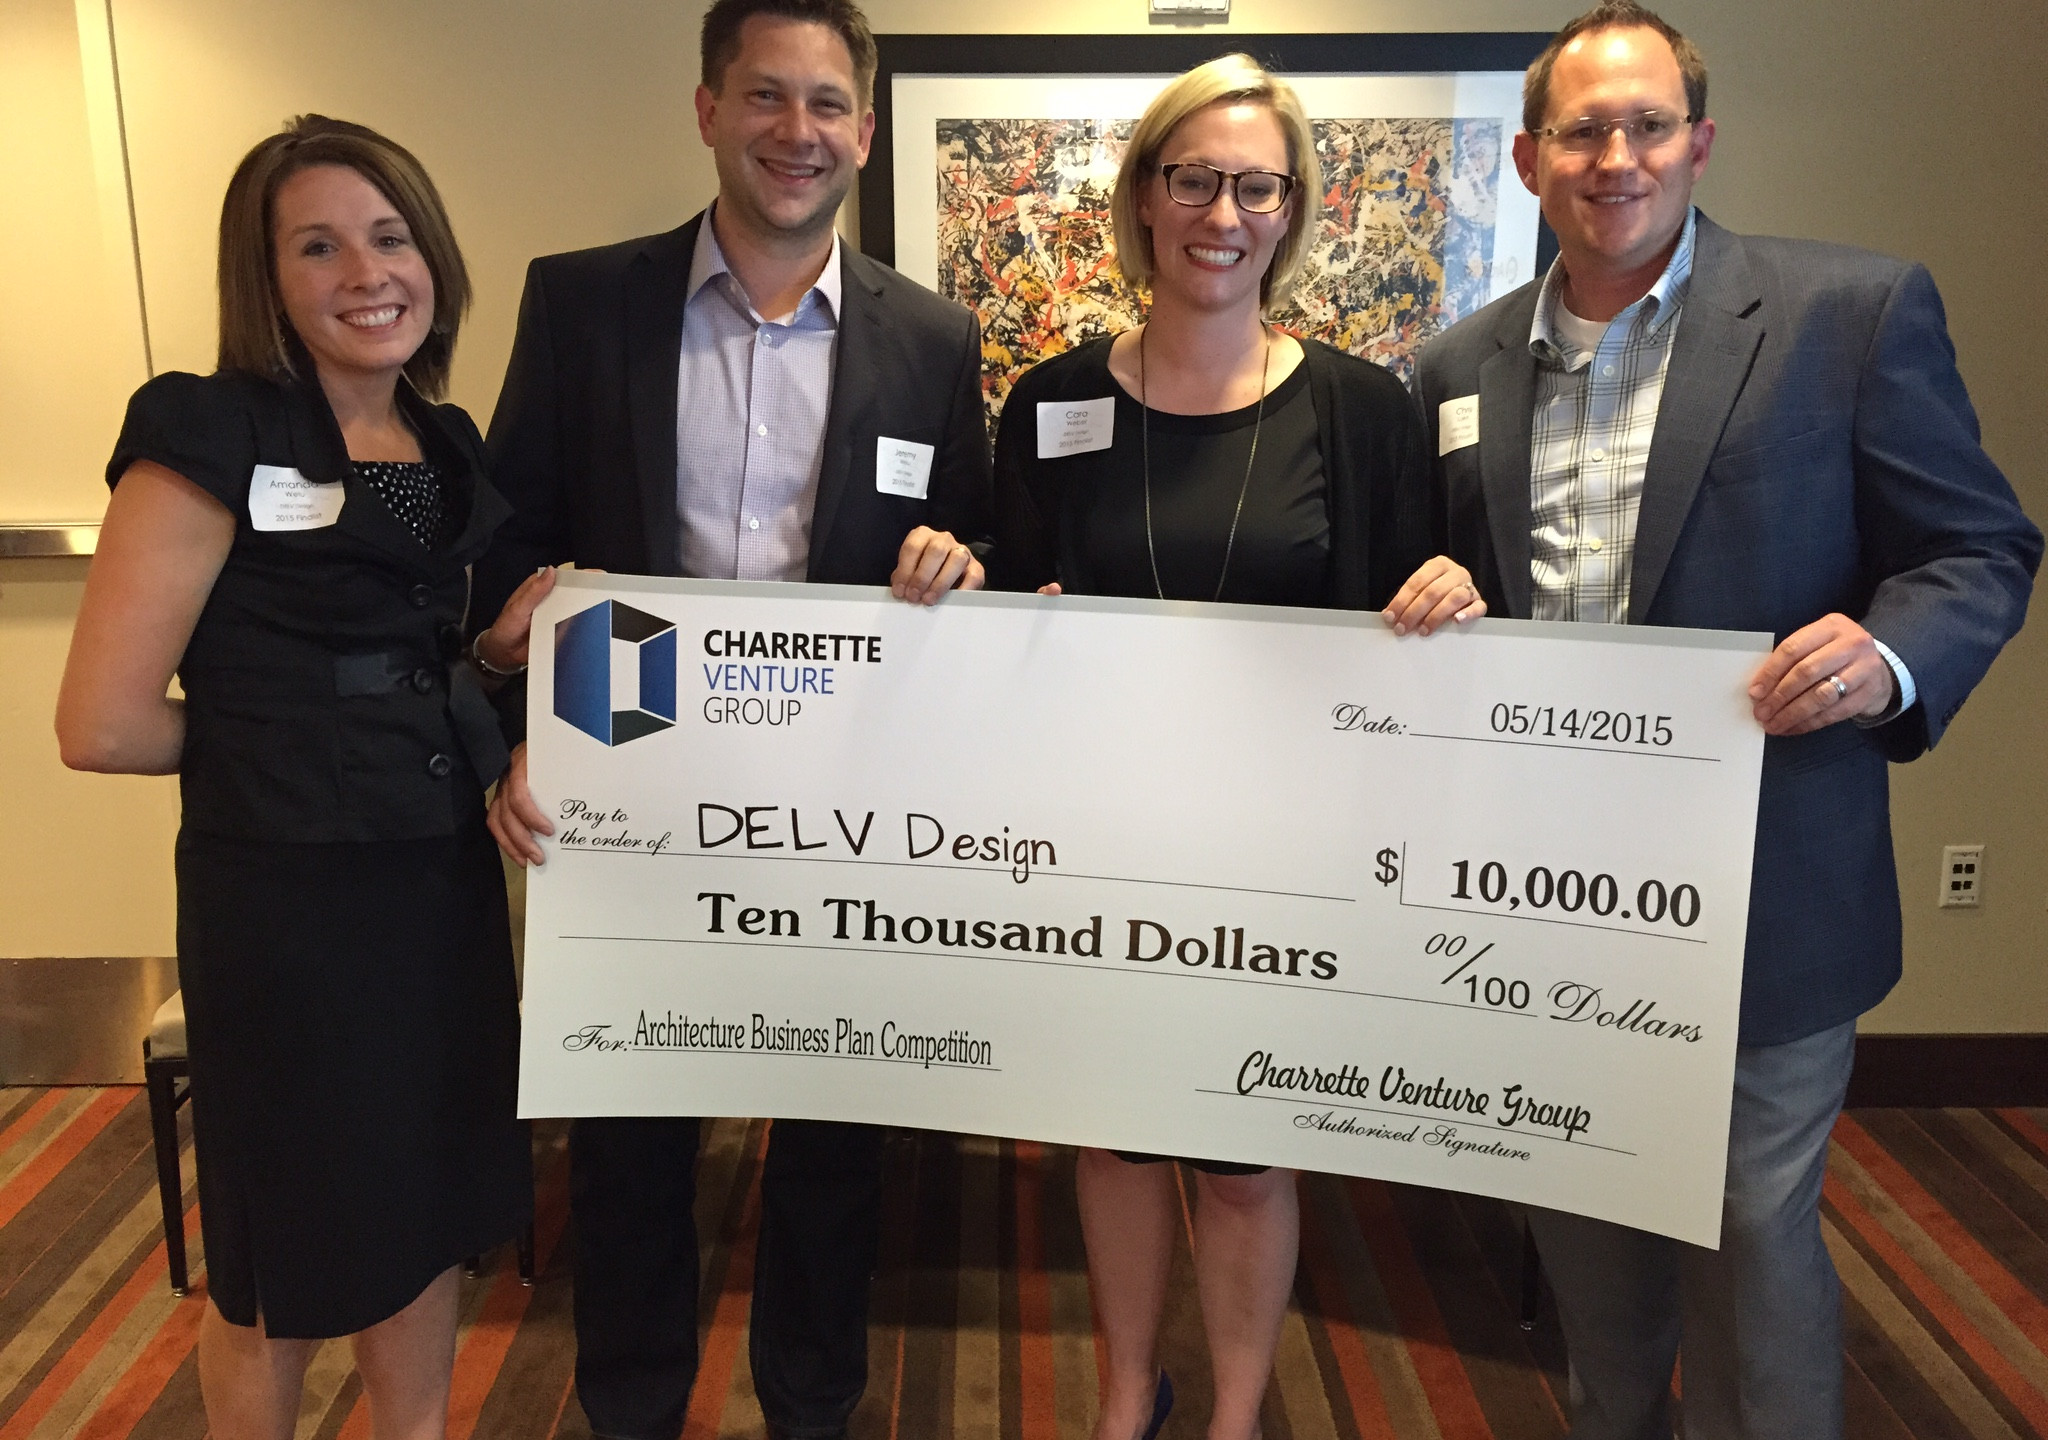 2015 Architecture Business Plan Competition Winners - DELV Design out of Indianapolis, IN